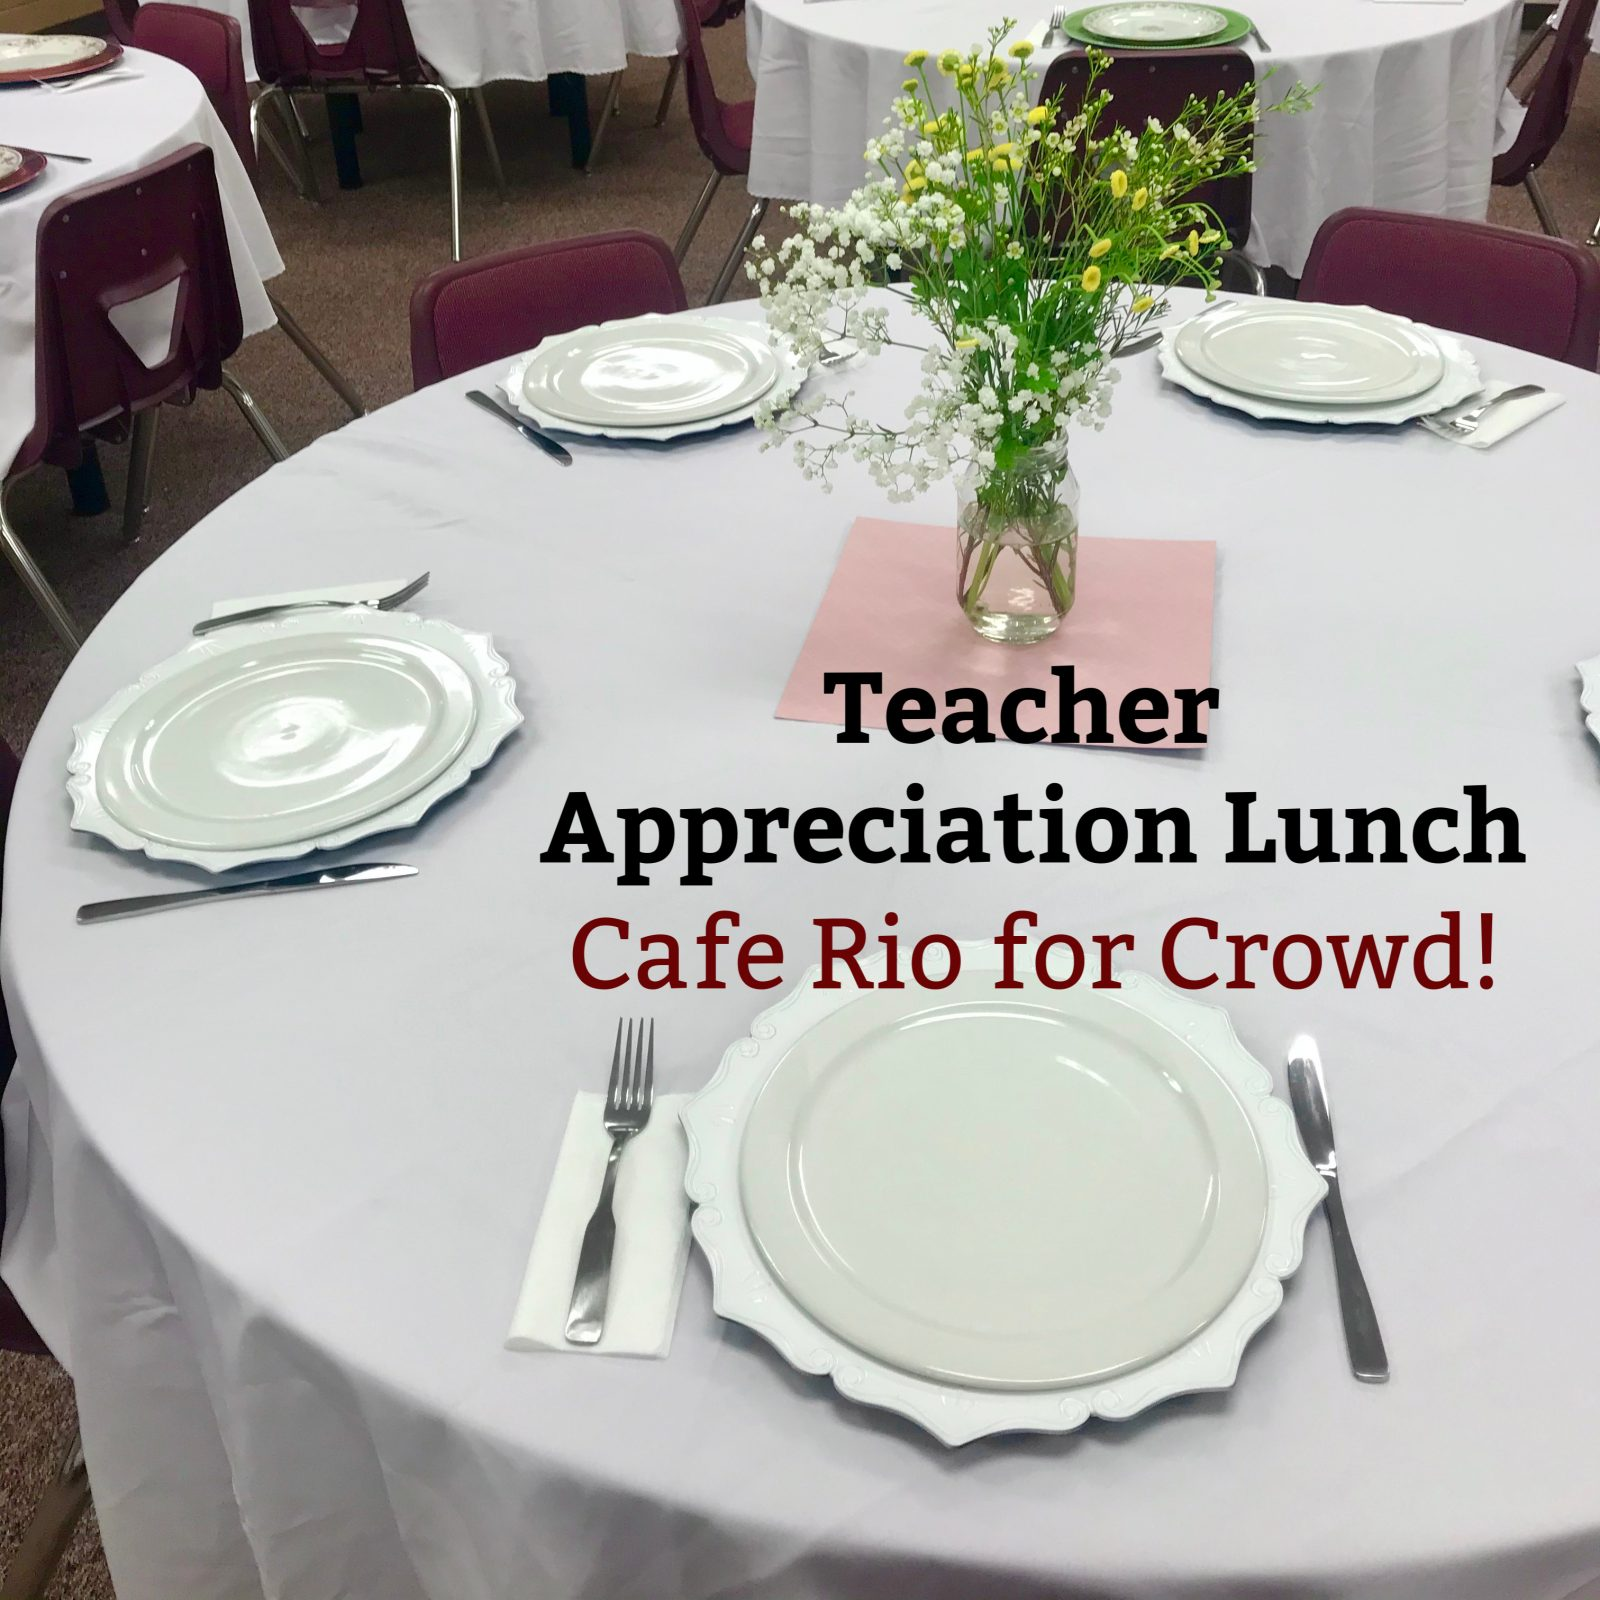 Cafe rio for teacher appreciation lunch